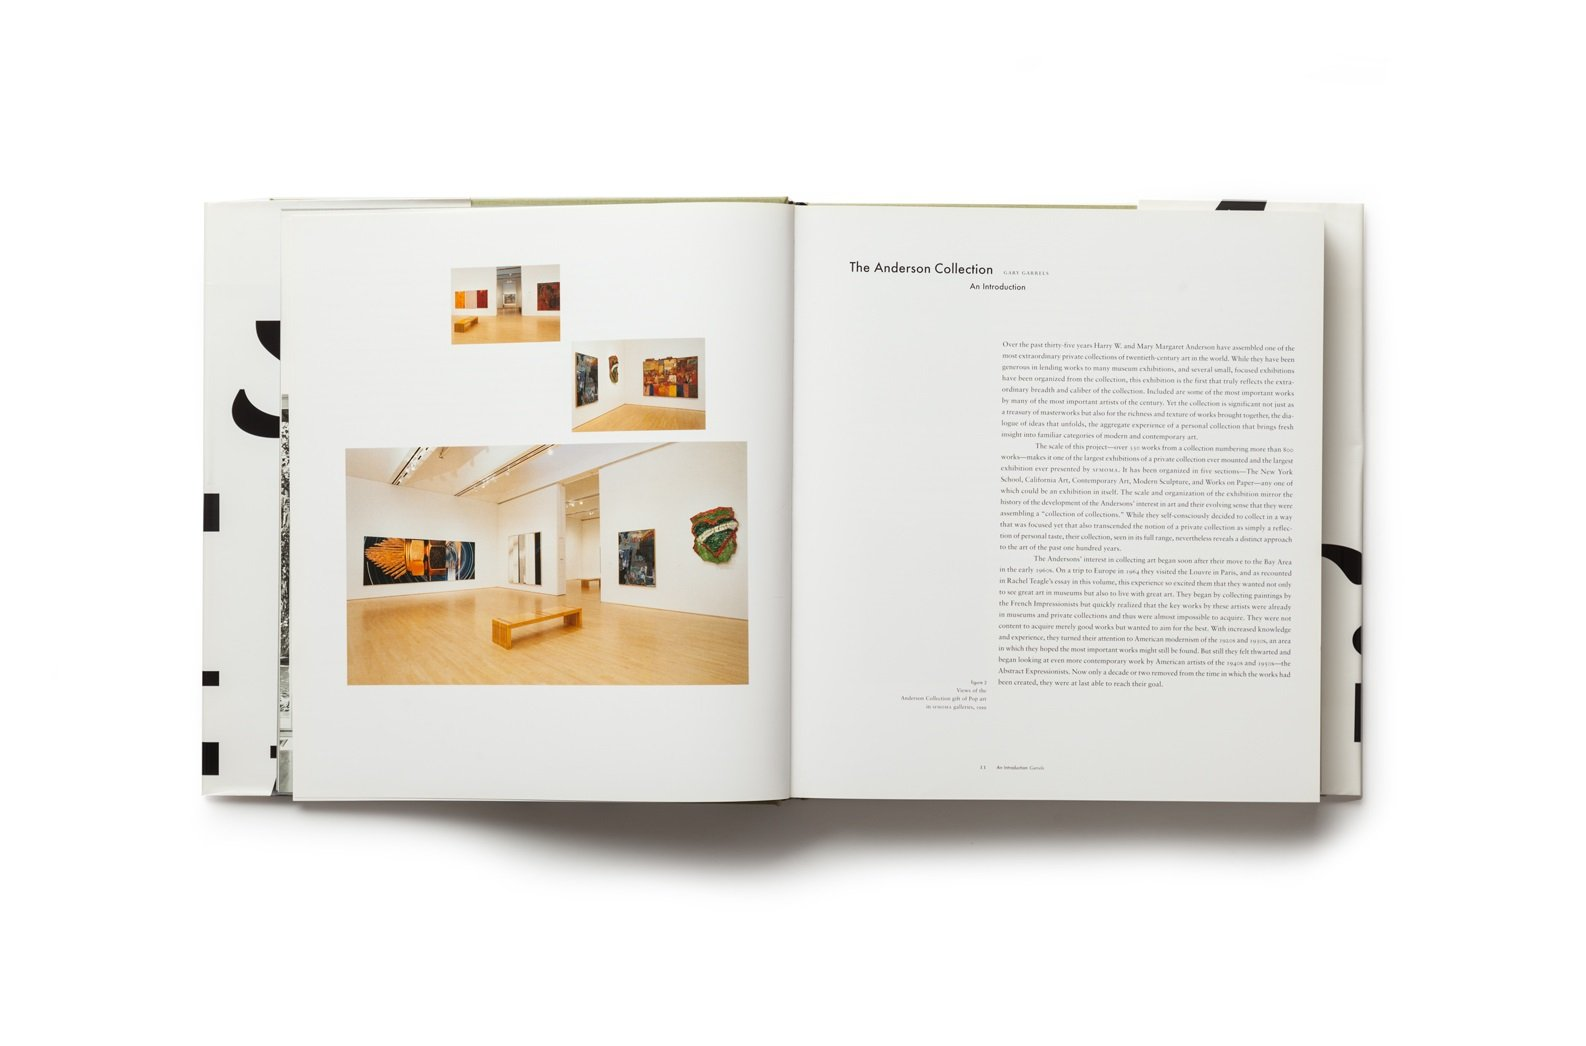 Celebrating Modern Art: The Anderson Collection publication pages 10-11